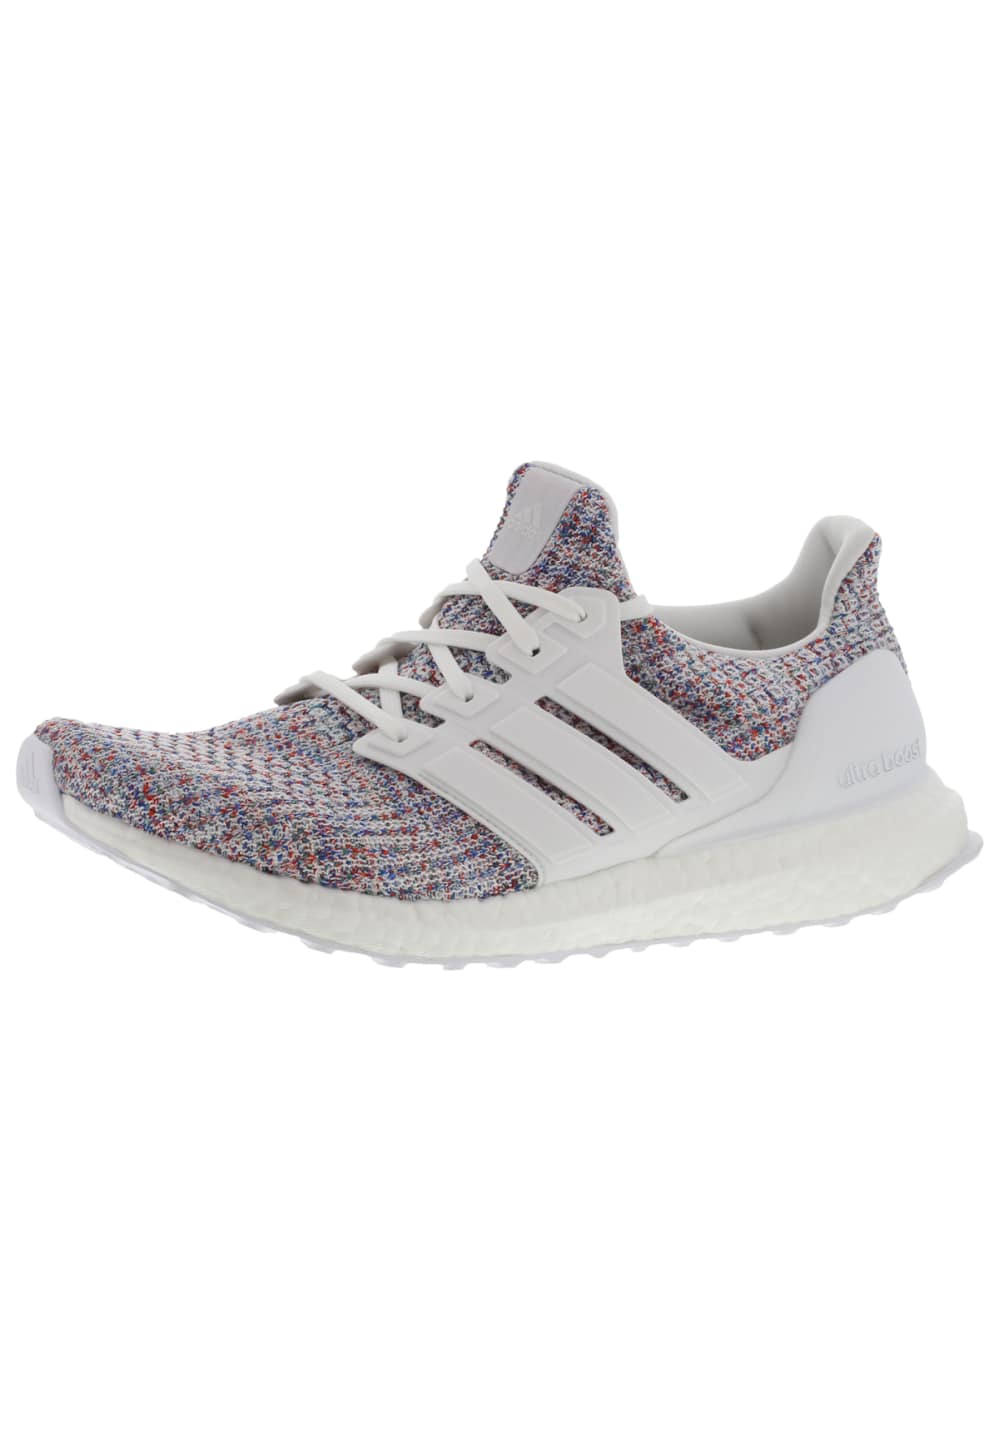 nouveau concept c597b 17faf adidas Ultra Boost - Running shoes for Men - Multicolor